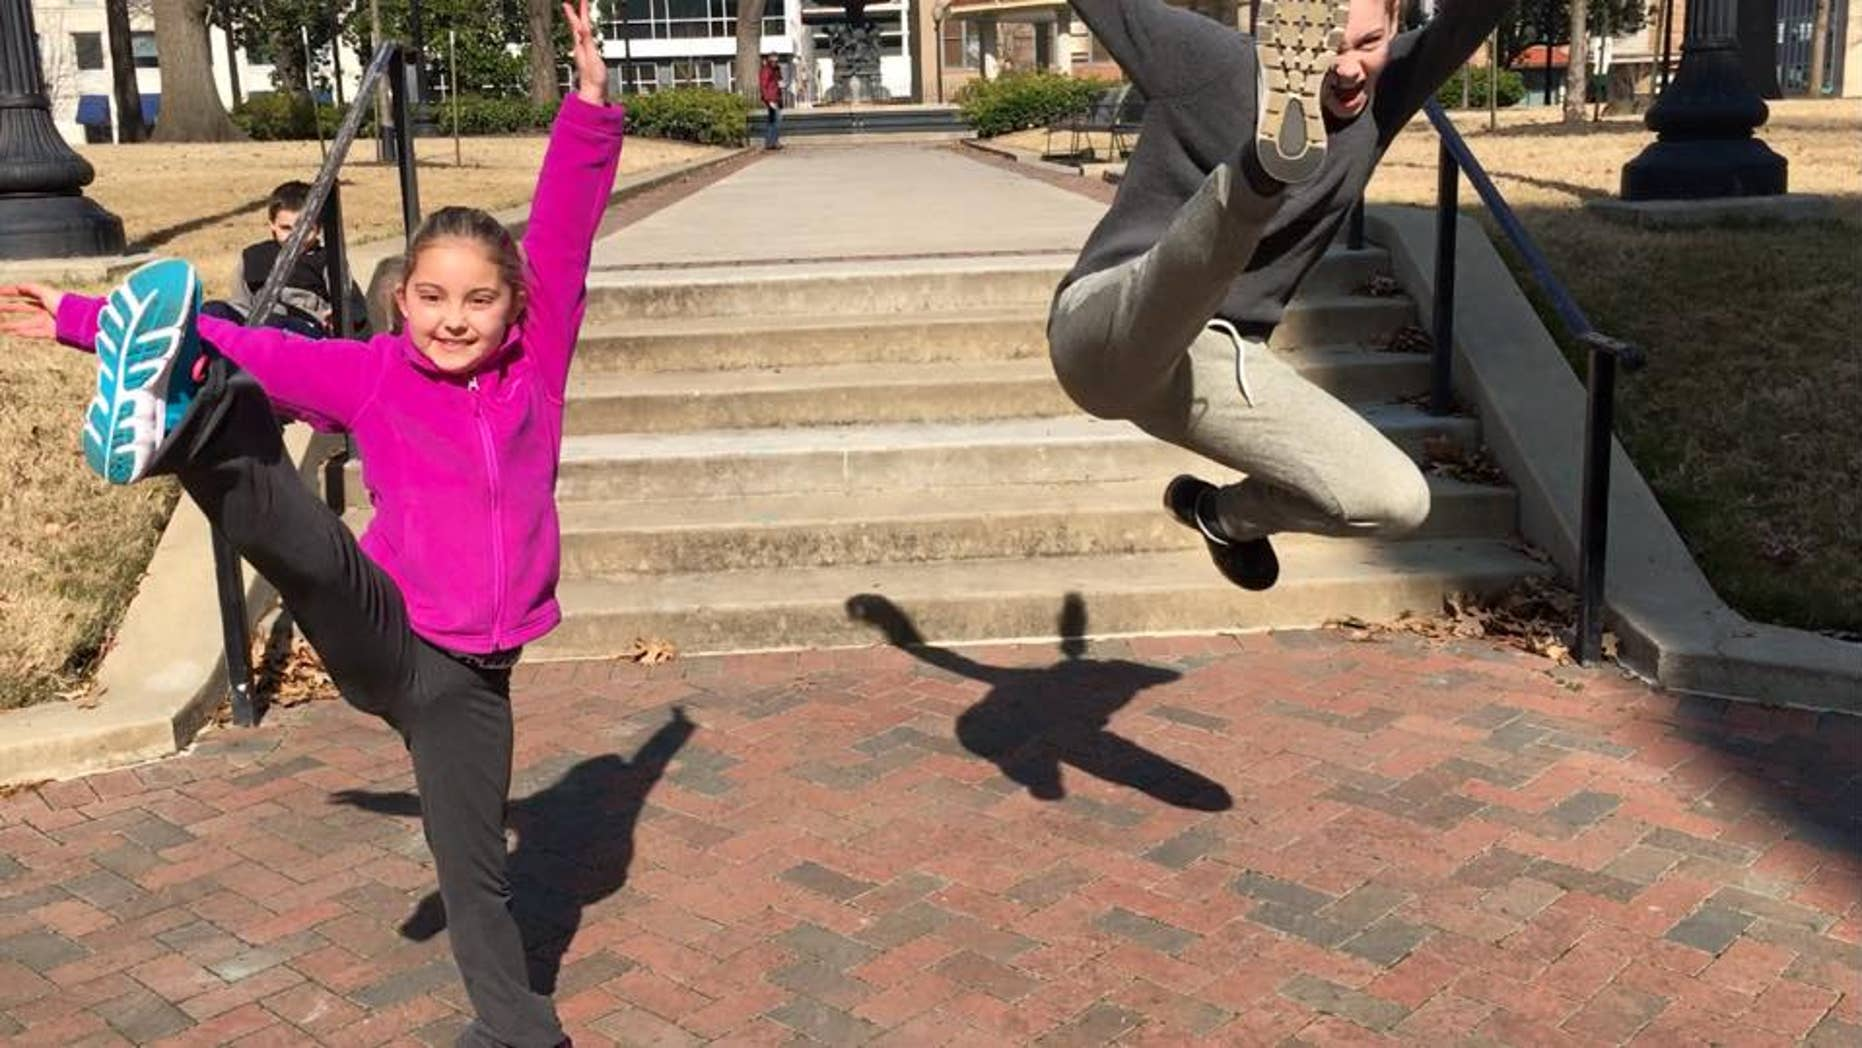 Parker Monhollon, 8, was diagnosed with diffuse intrinsic pontine glioma (DIPG)